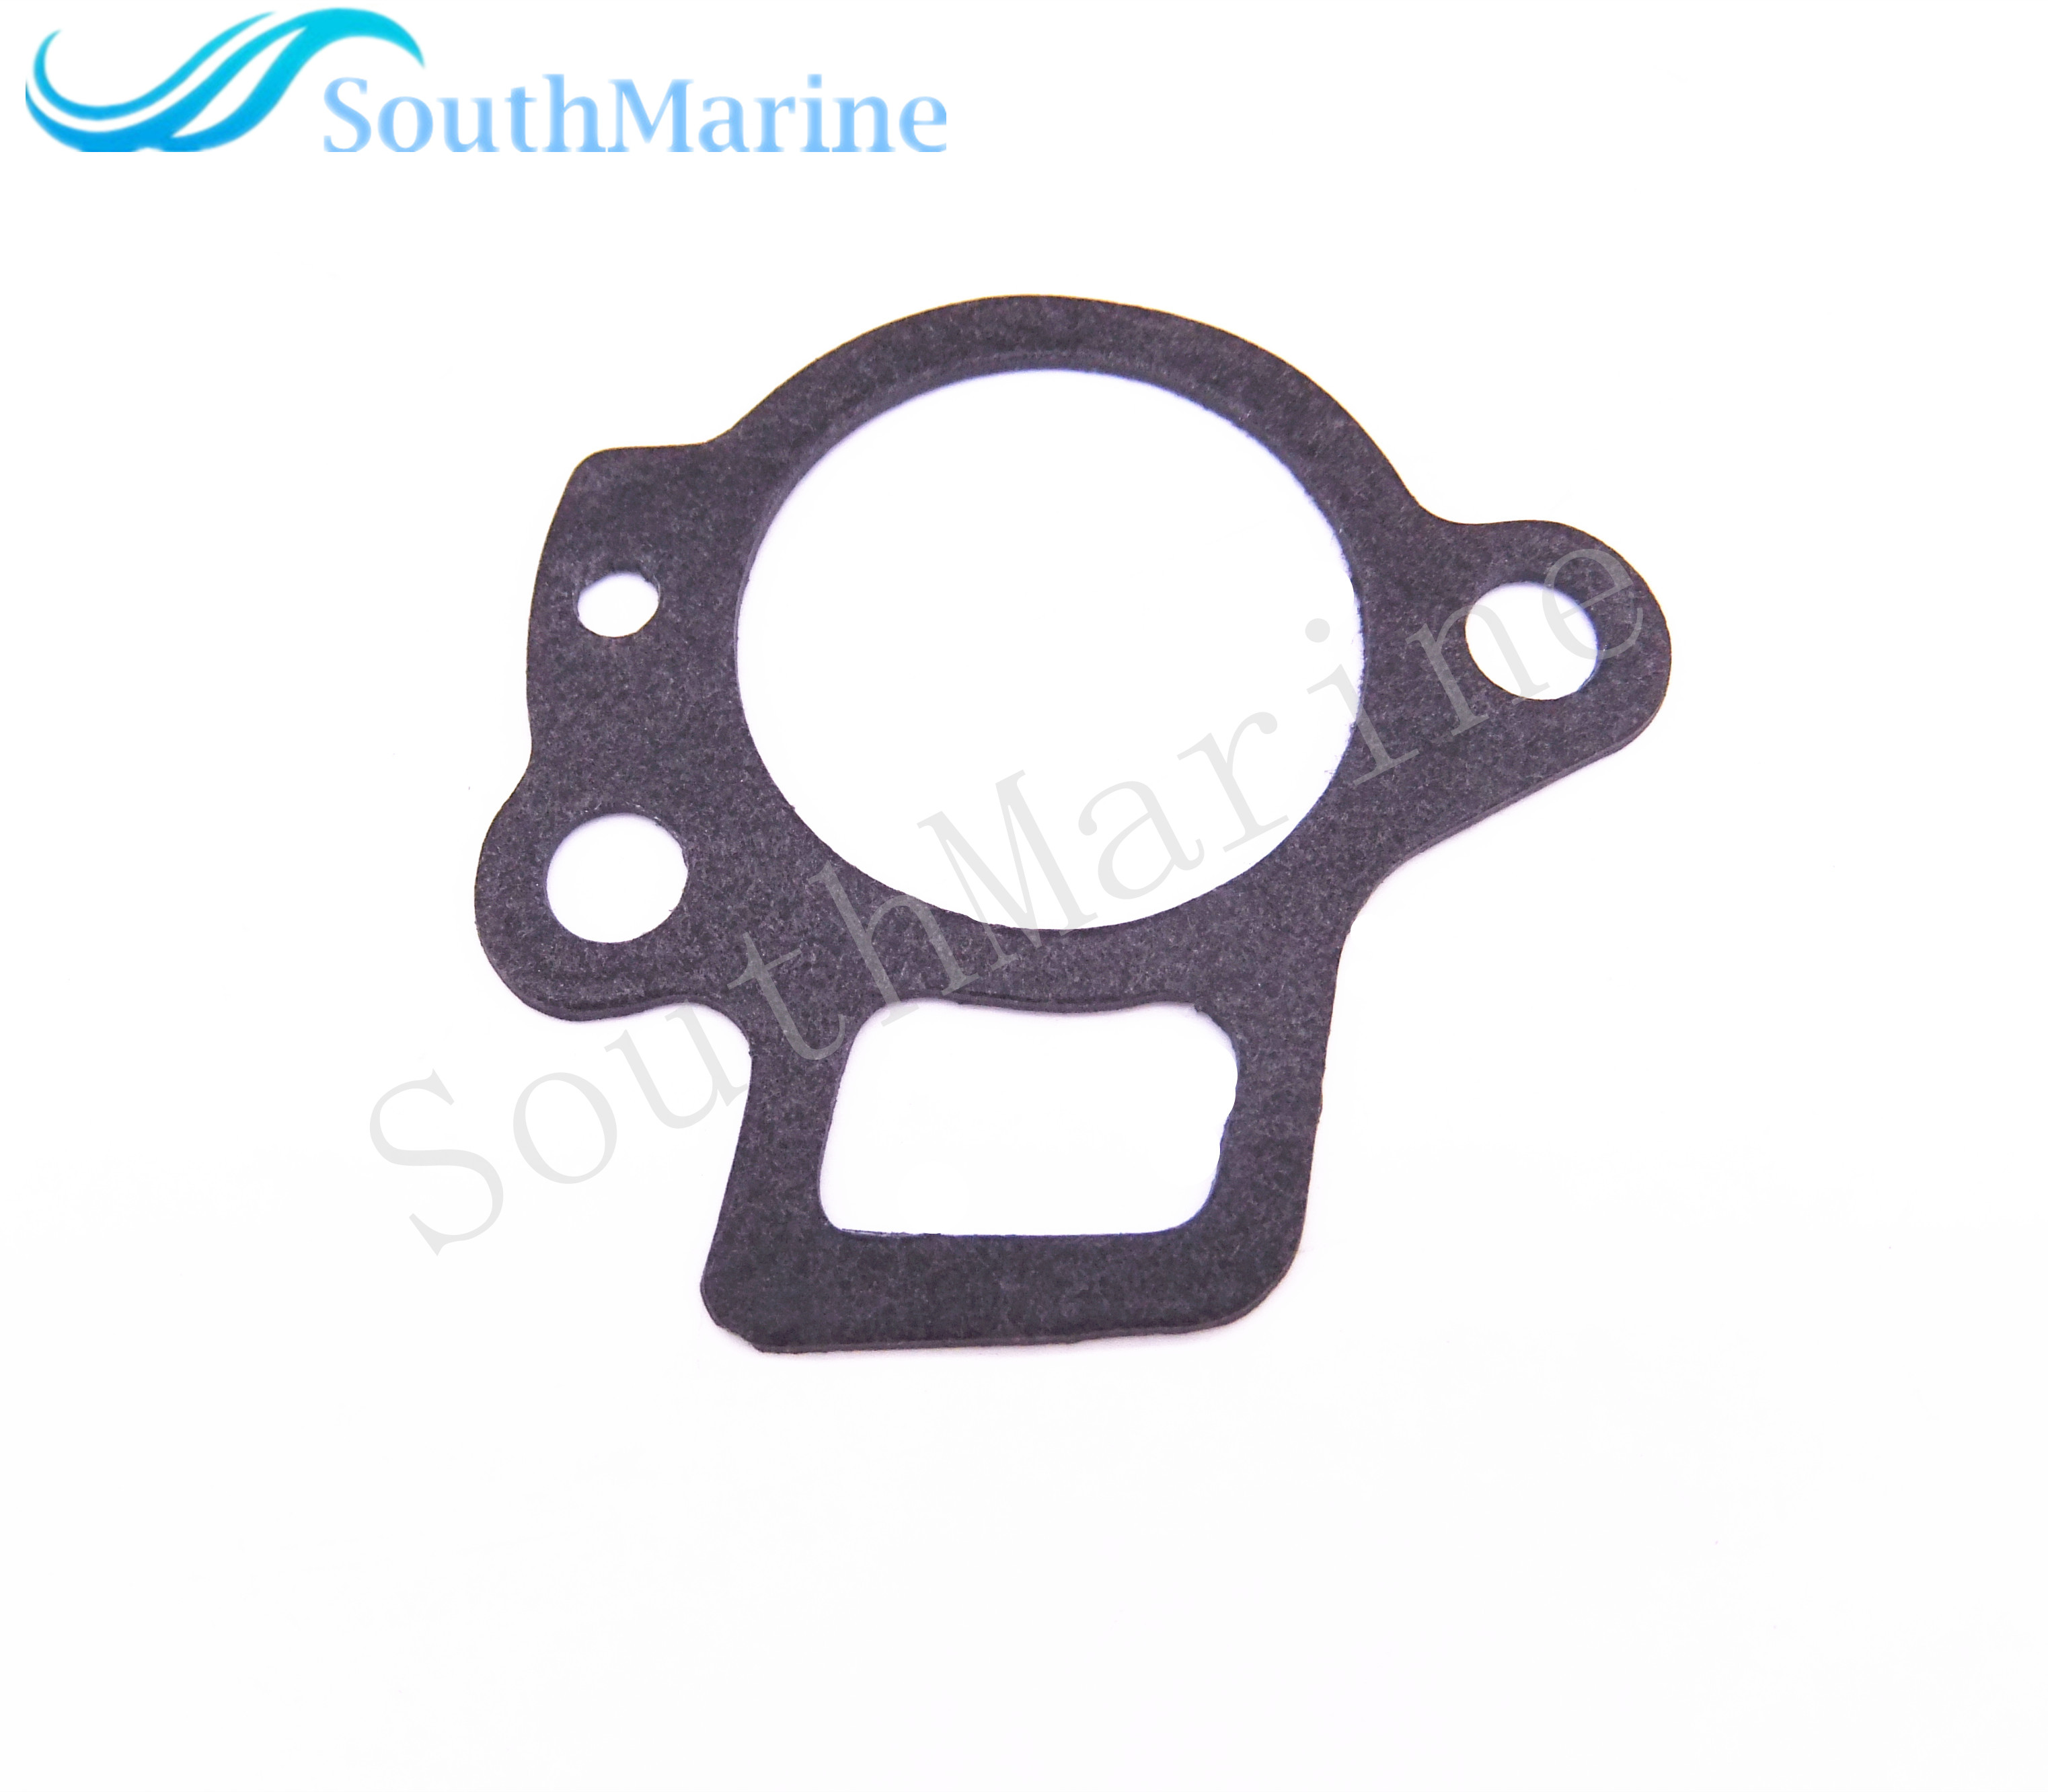 Boat Motor 655-12414-A1 Thermostat Cover Gasket for Yamaha 2-Stroke 25F 30F